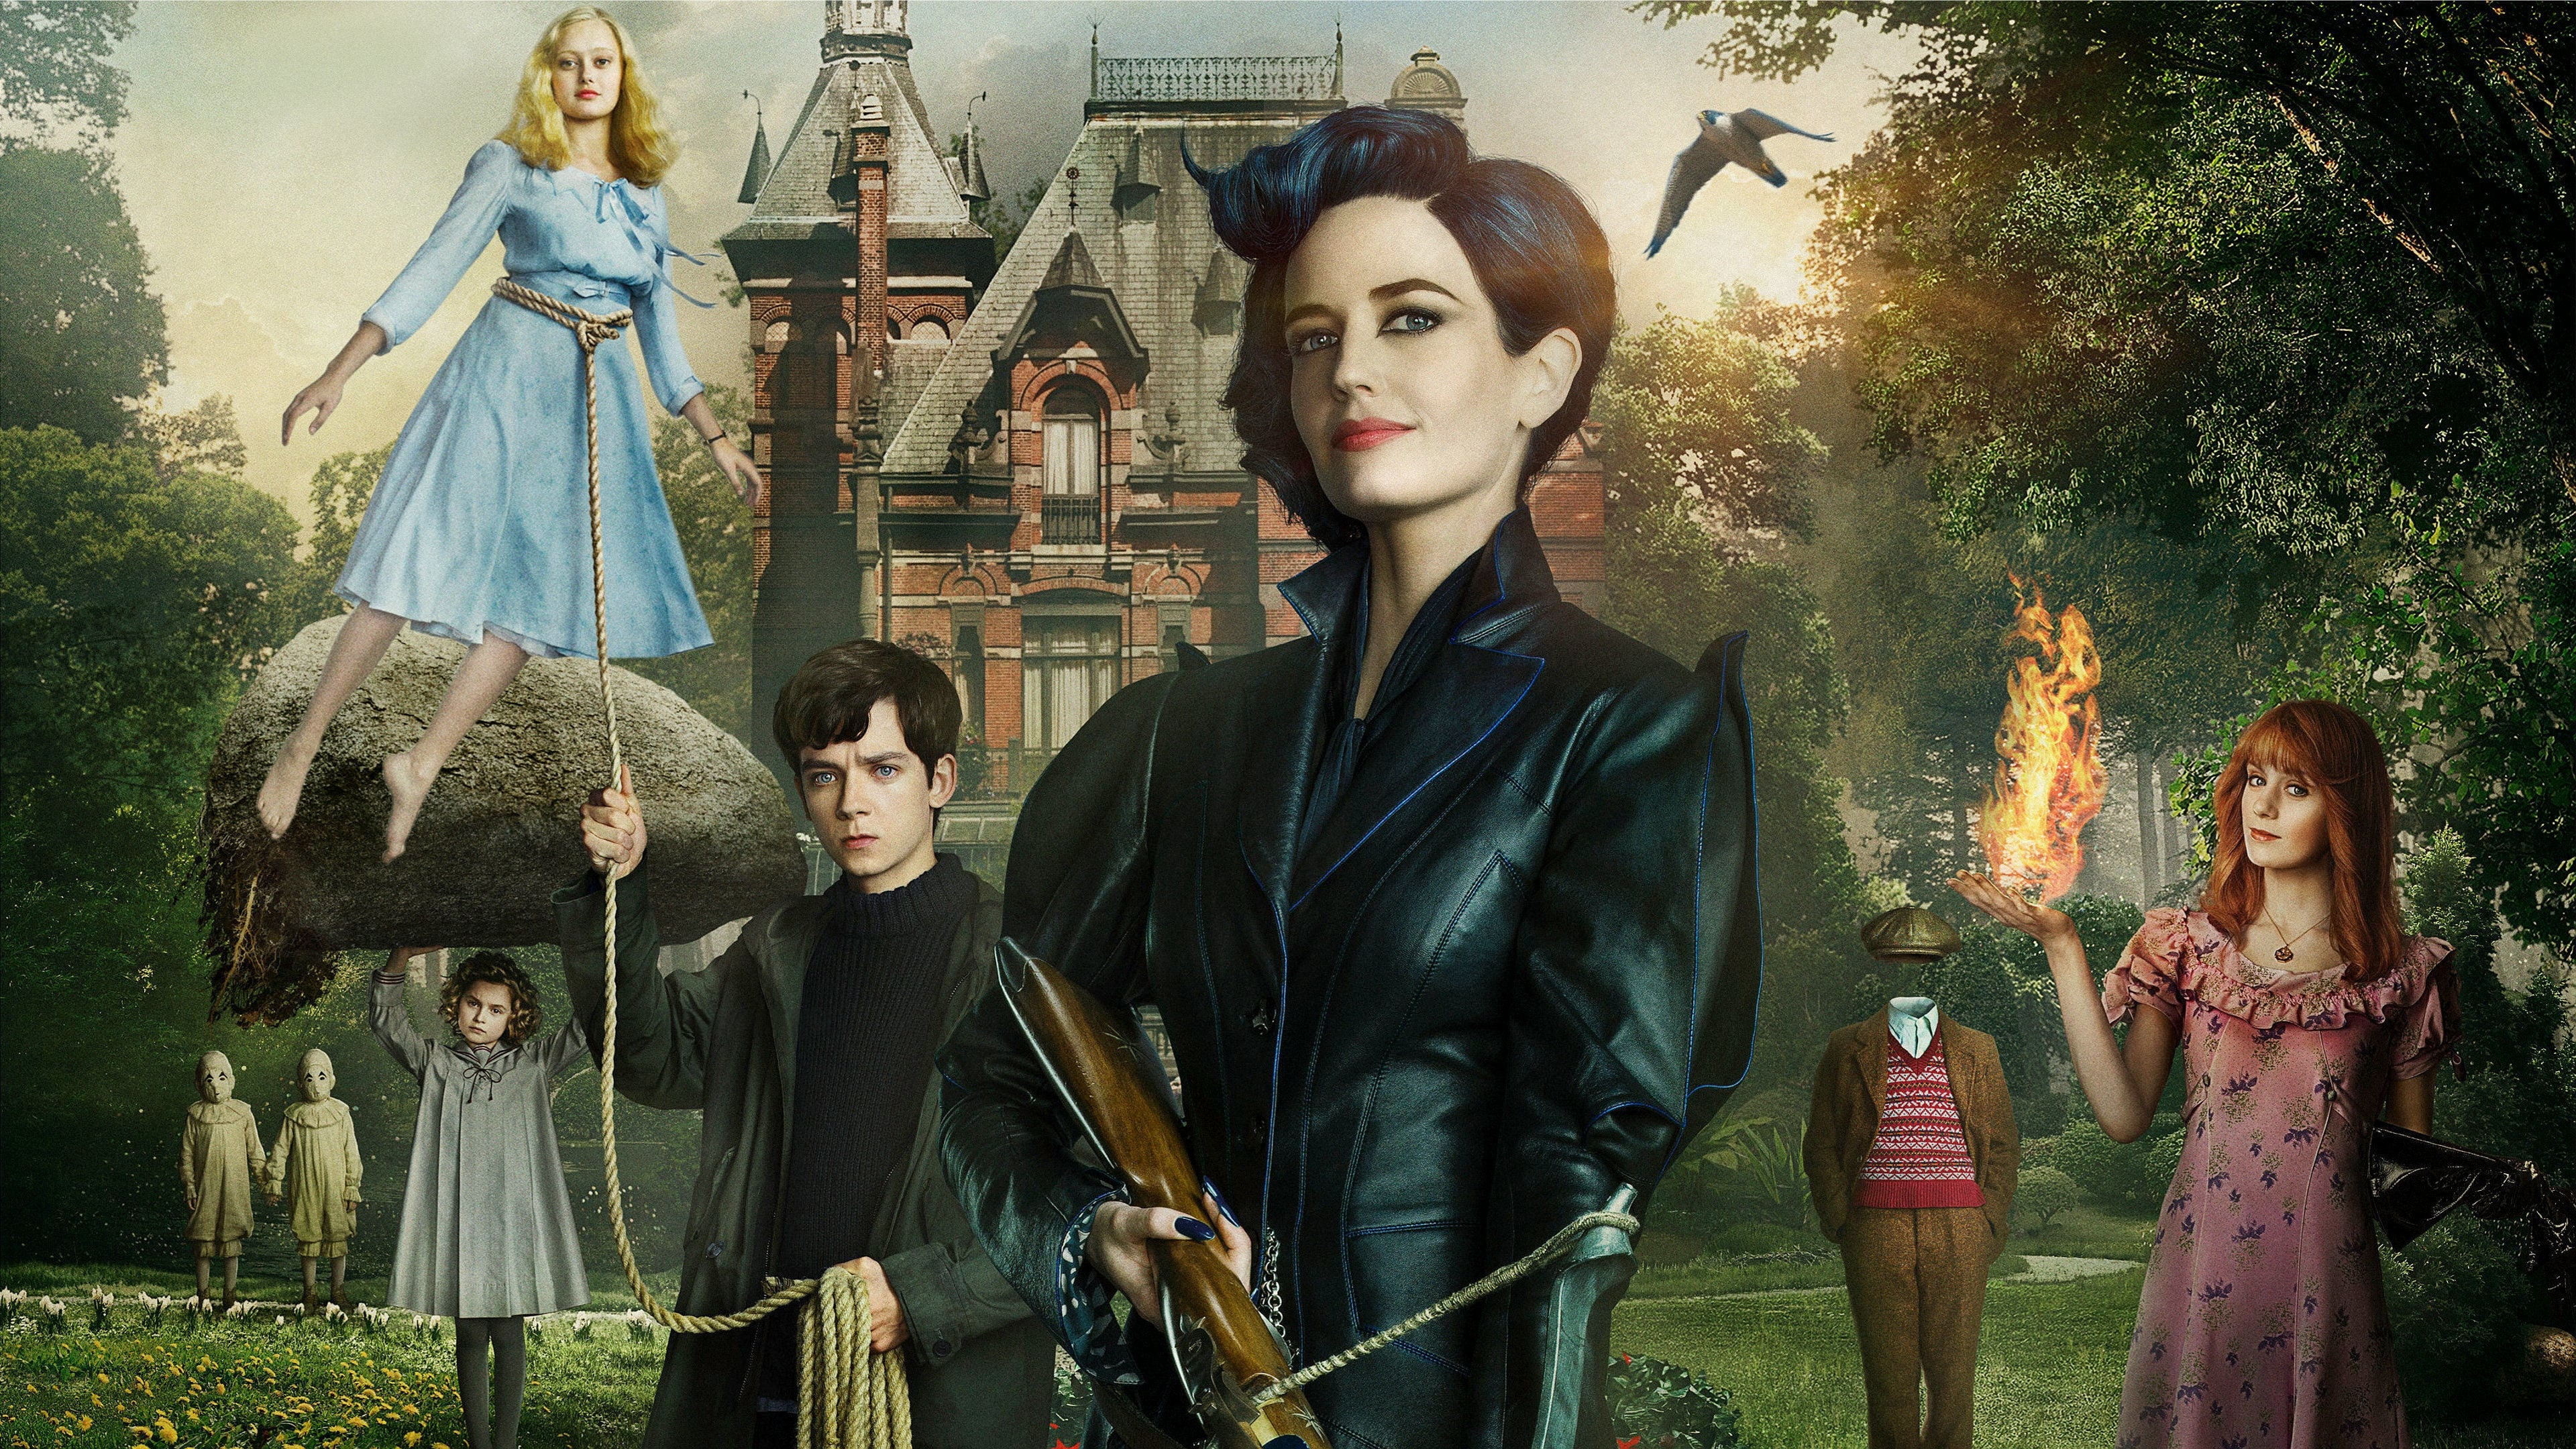 Miss Peregrine's Home for Peculiar Children (2016) 720p BrRip x264 - YIFY